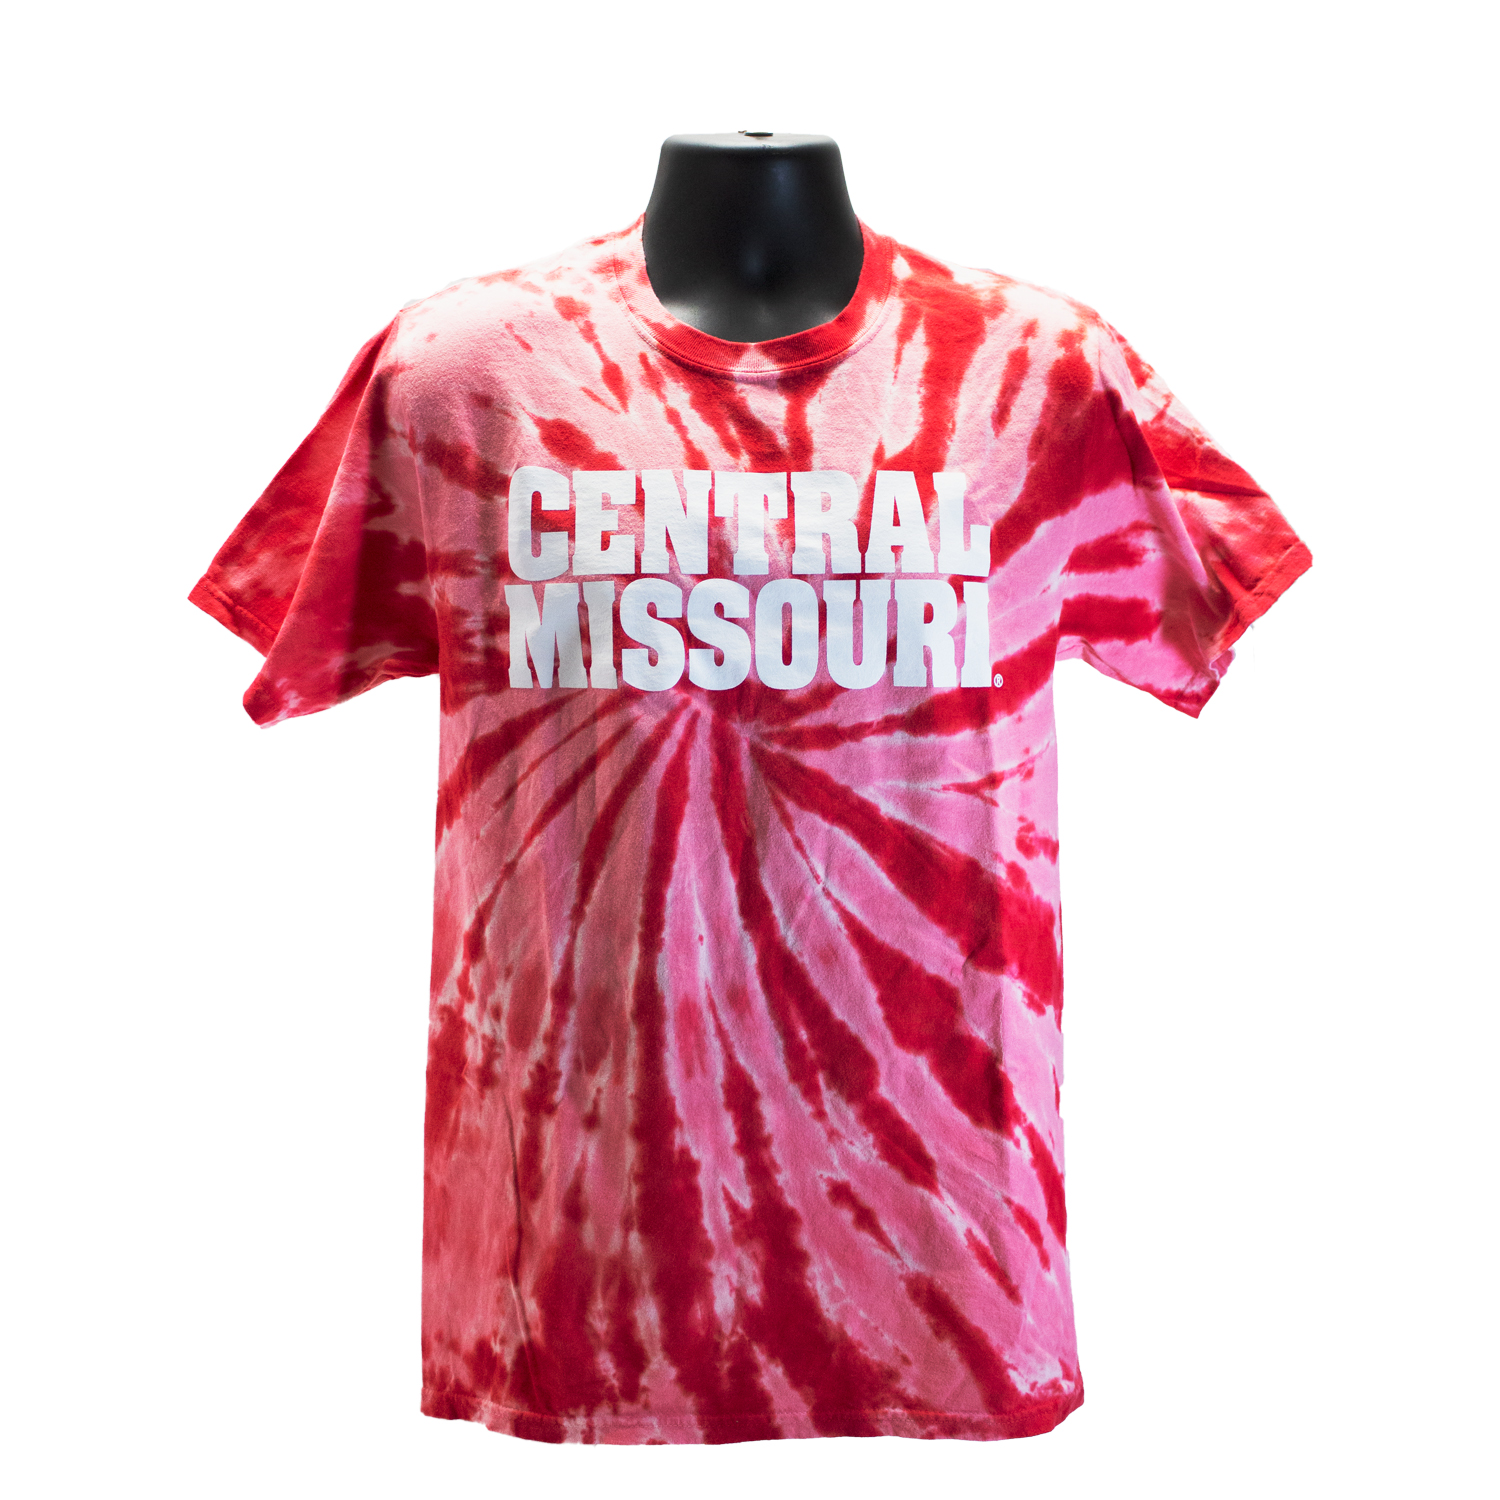 Image For CENTRAL MISSOURI TIE DYE TEE